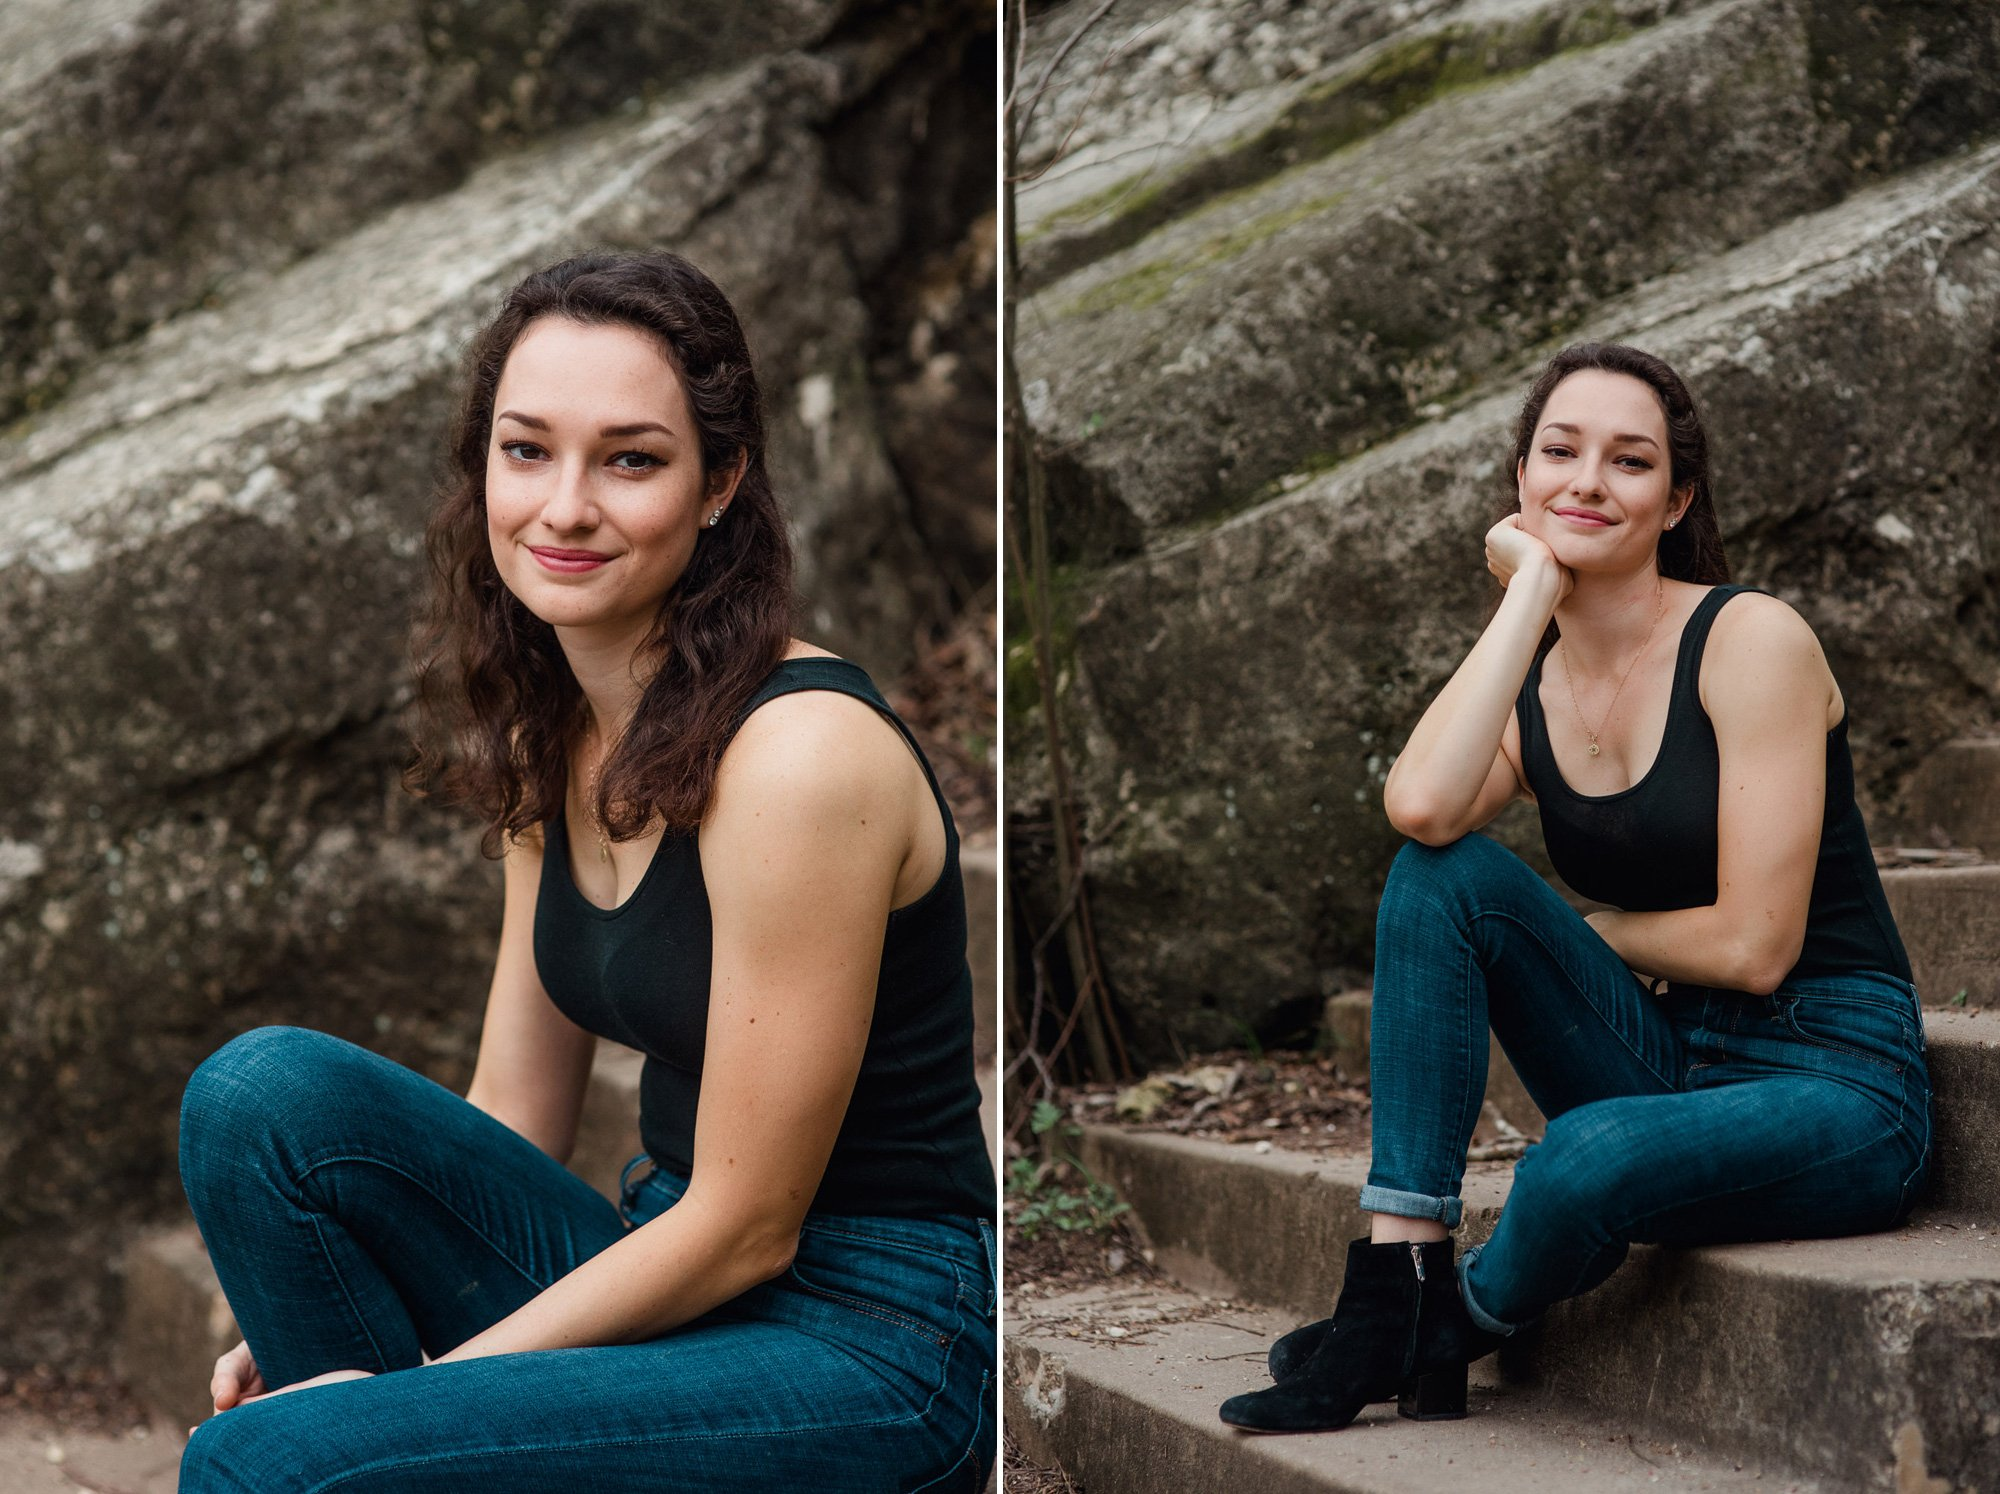 Austin editorial senior portraits outdoors.